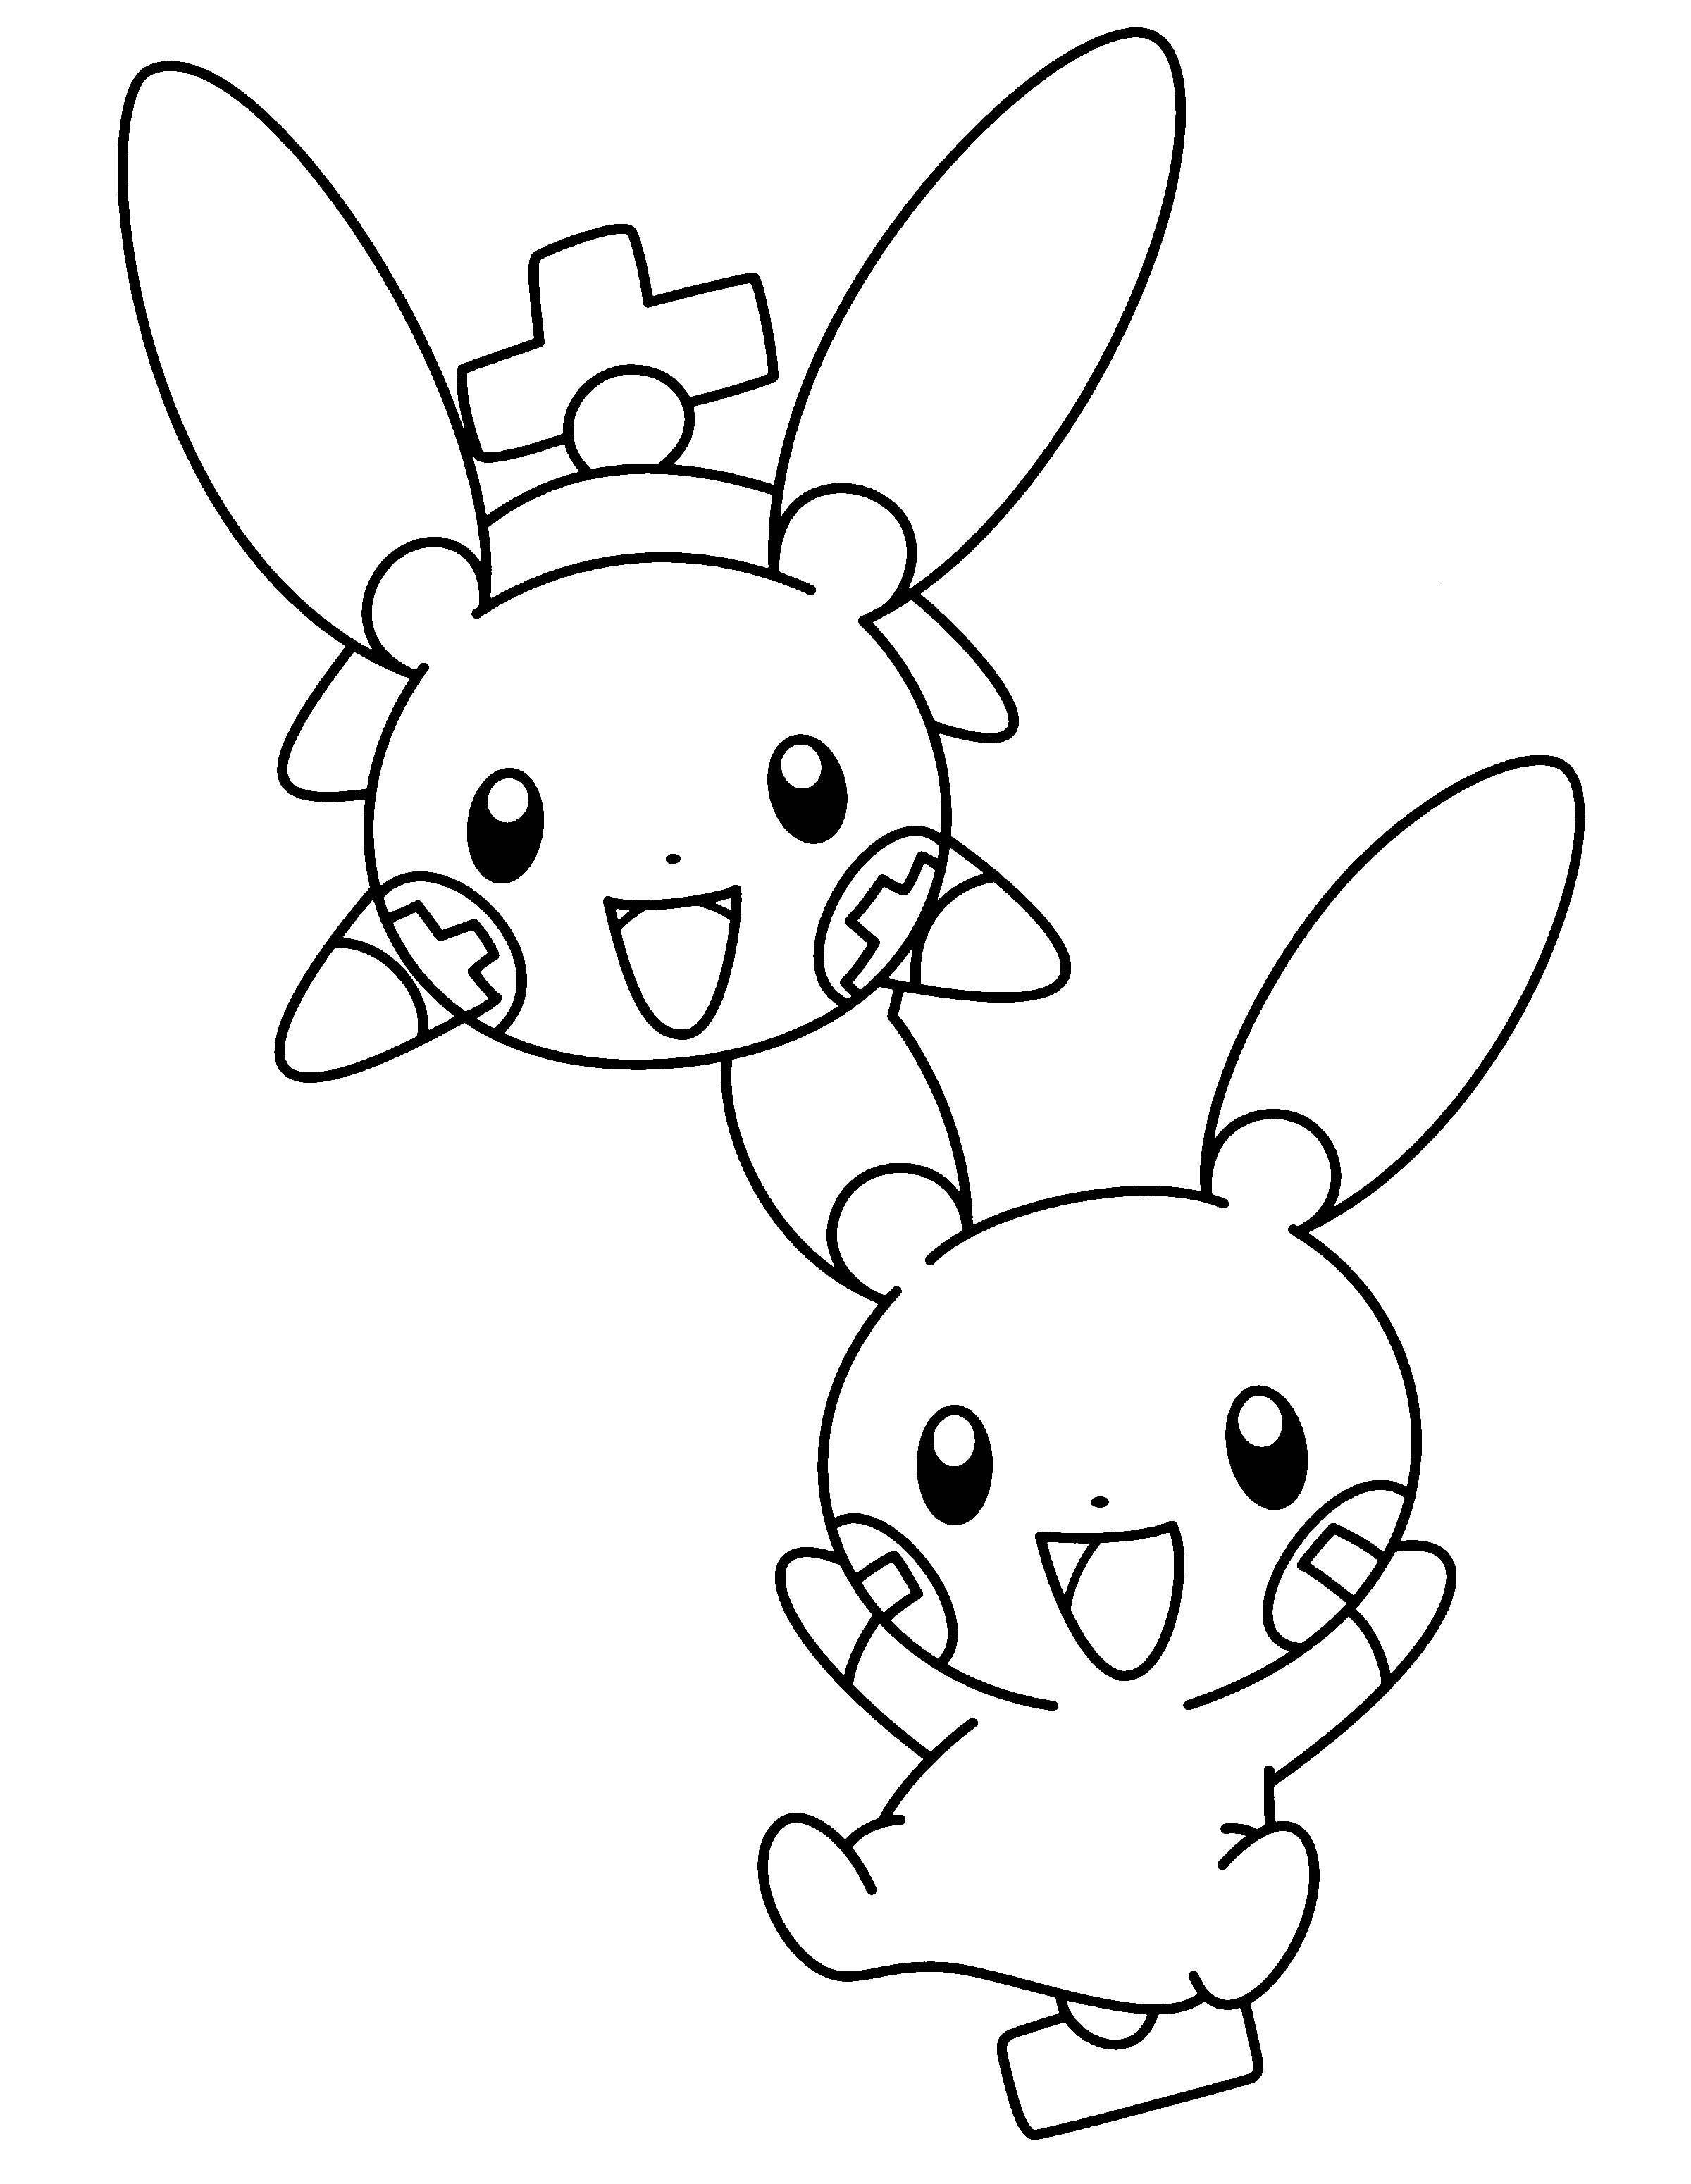 Baby Pokemon Coloring Pages Printable In 2020 Pokemon Coloring Pages Pokemon Coloring Cute Coloring Pages